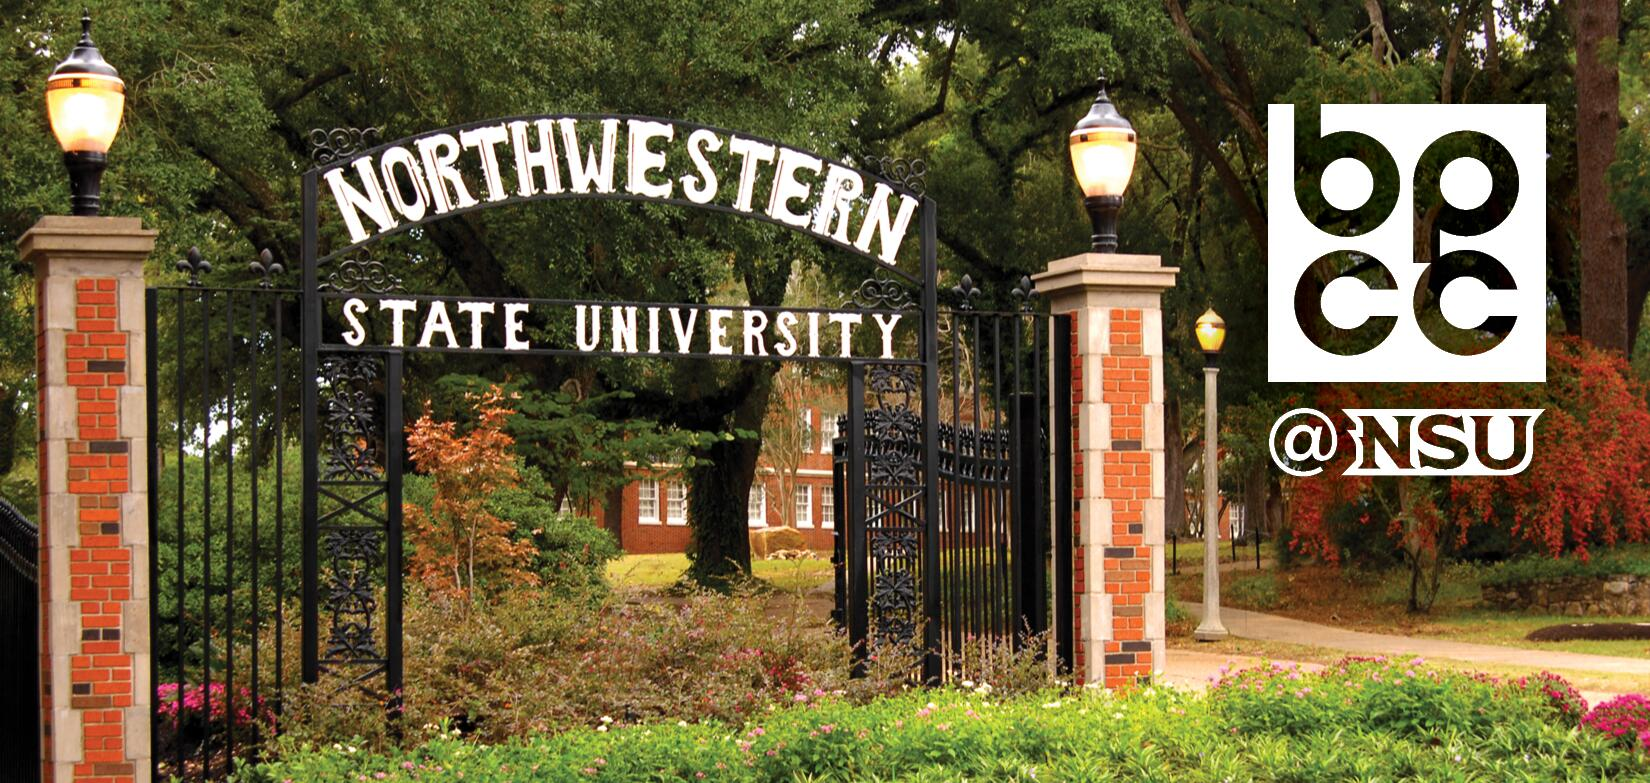 Northwestern State University Campus